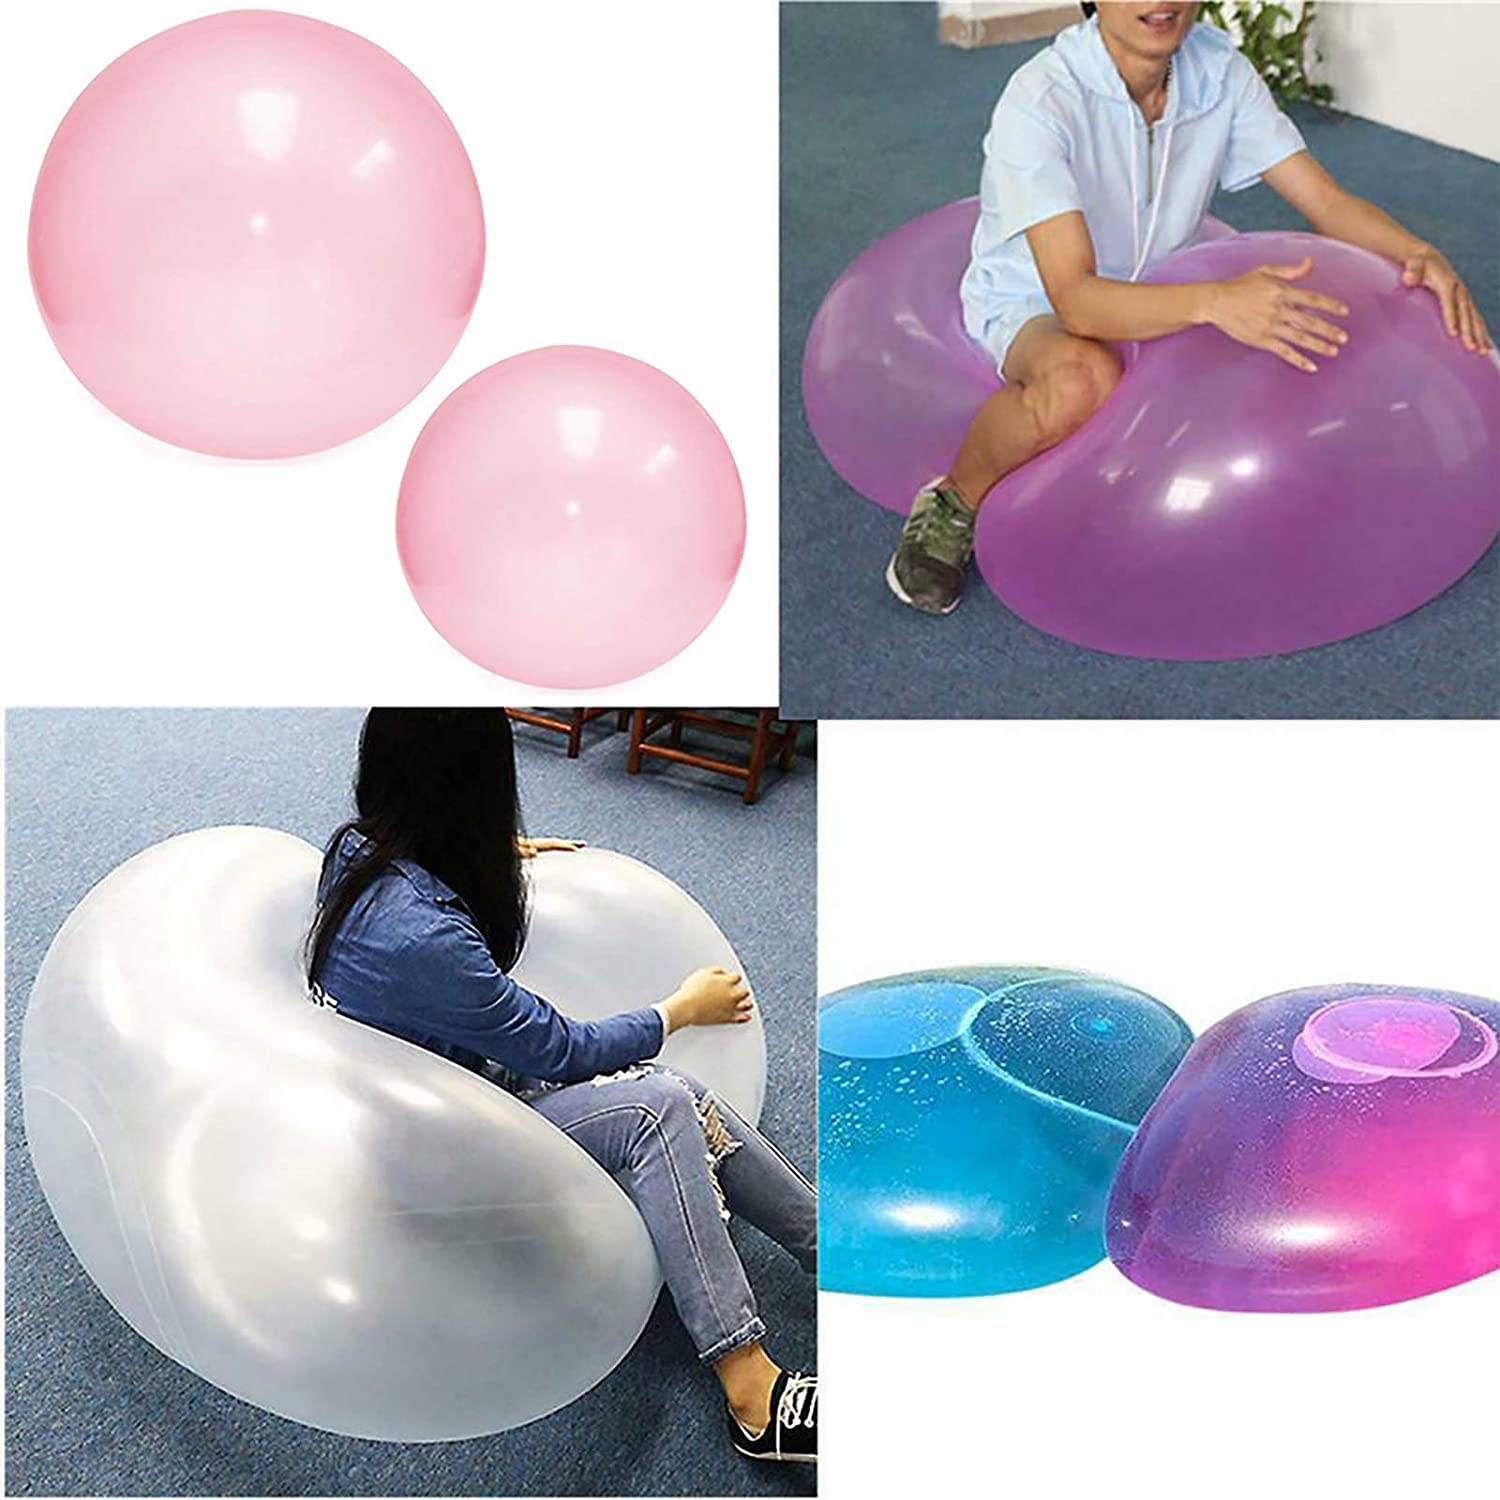 TIANTIAN Water Bubble Water Balloon Inflatable Tear-Resistant Amazing Super Bubble Water Filled Bubble Soft Rubber Ball Beach Pool Outdoor Play Ball Balloon Set for Kids Adults